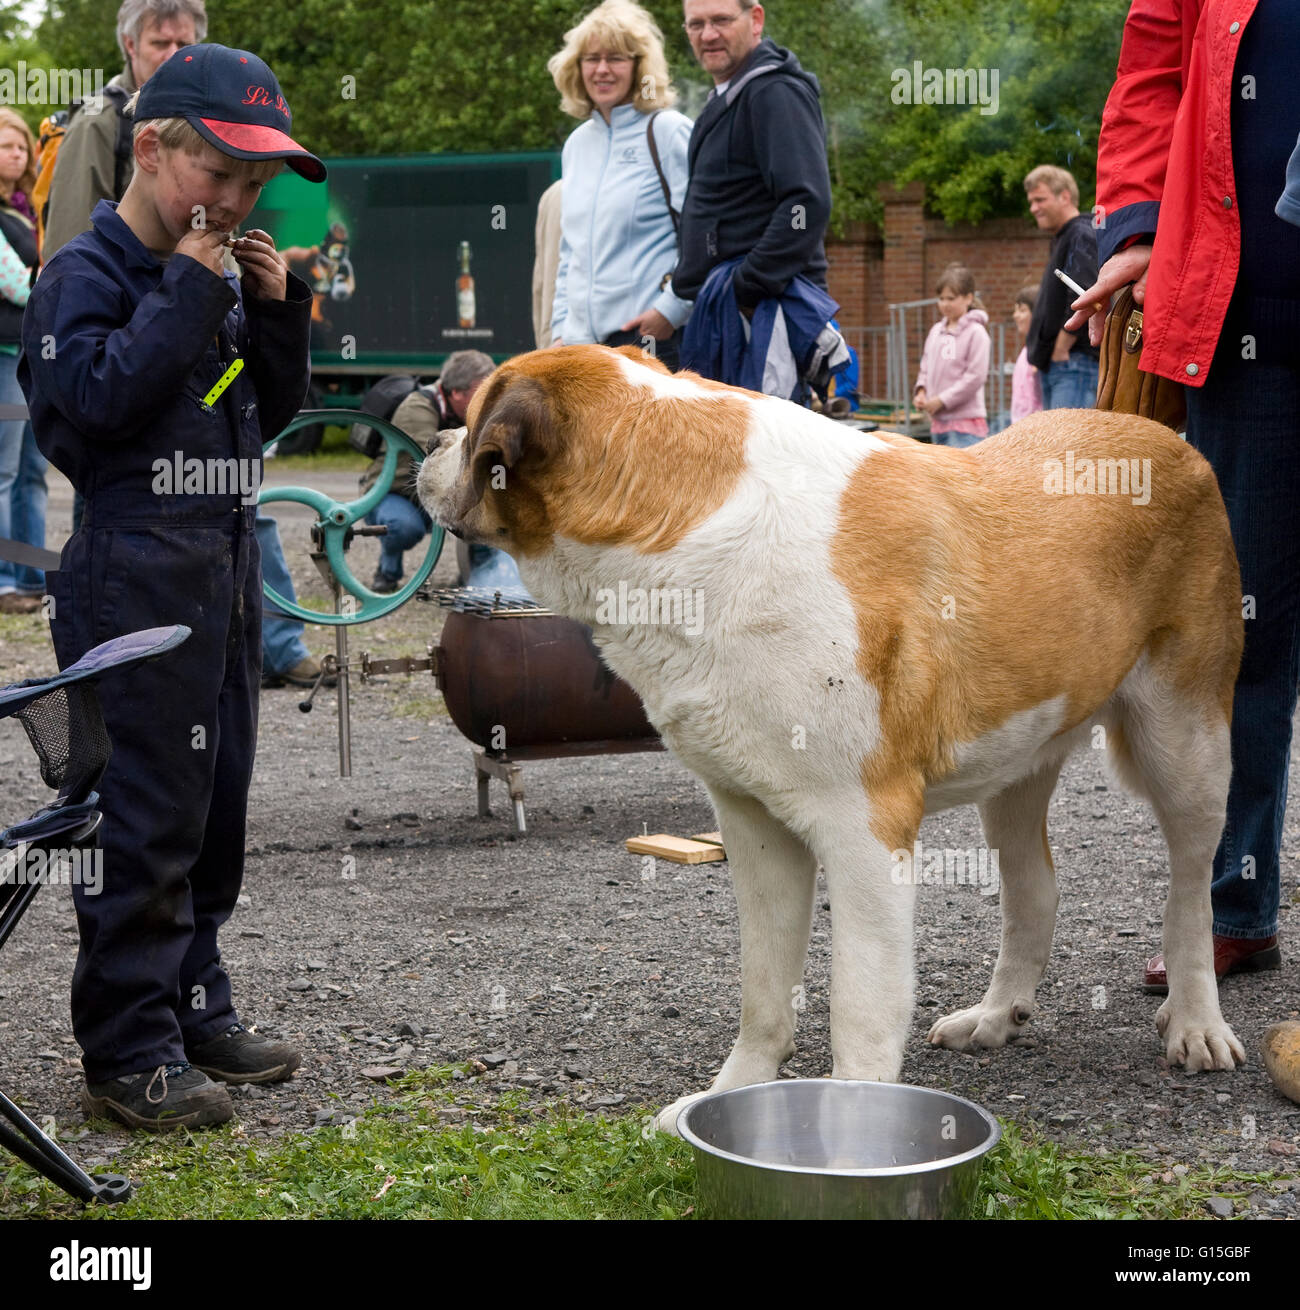 Europe, Germany, North Rhine-Westphalia, Ruhr area, Bochum, boy gnaws a bone, dog is watching him. Stock Photo